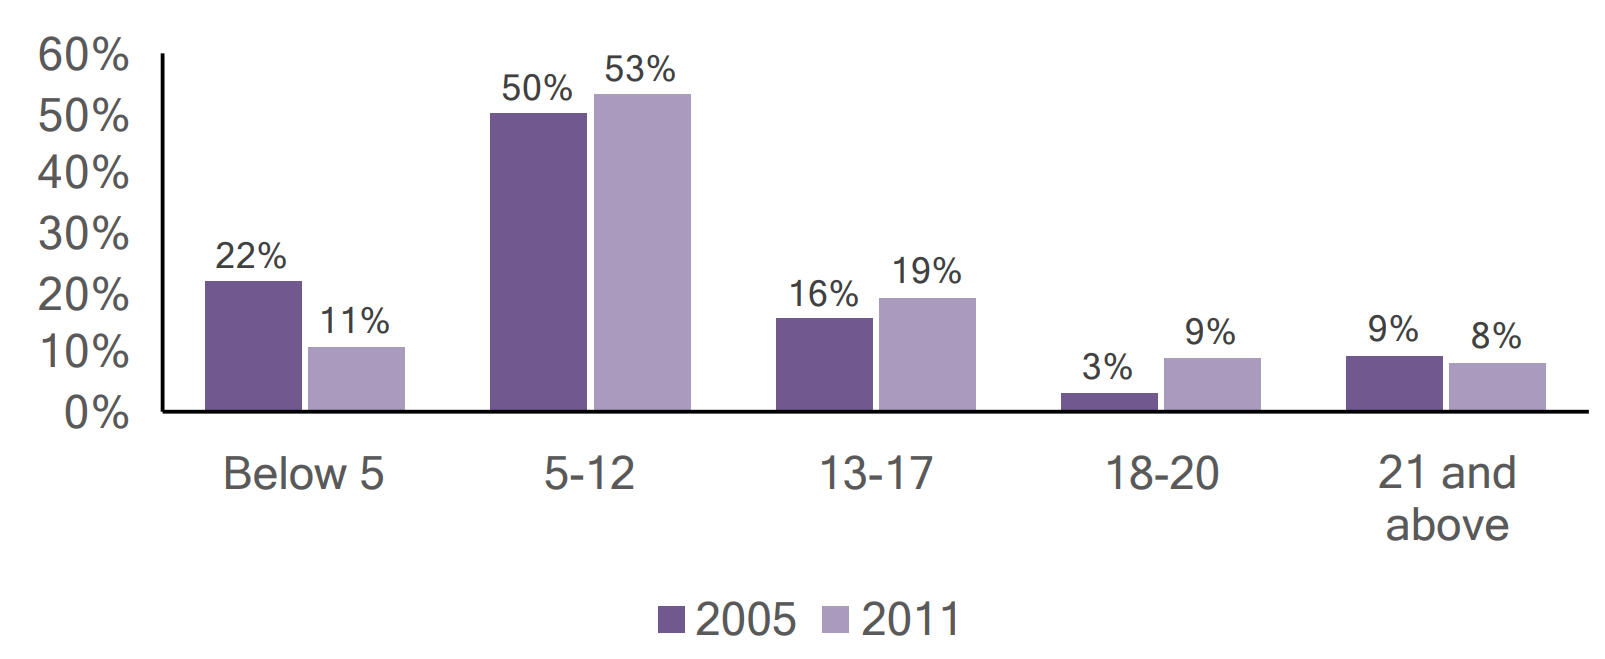 Bar graph of individuals with autism in clinton County by age, comparing 2005 and 2011 data.